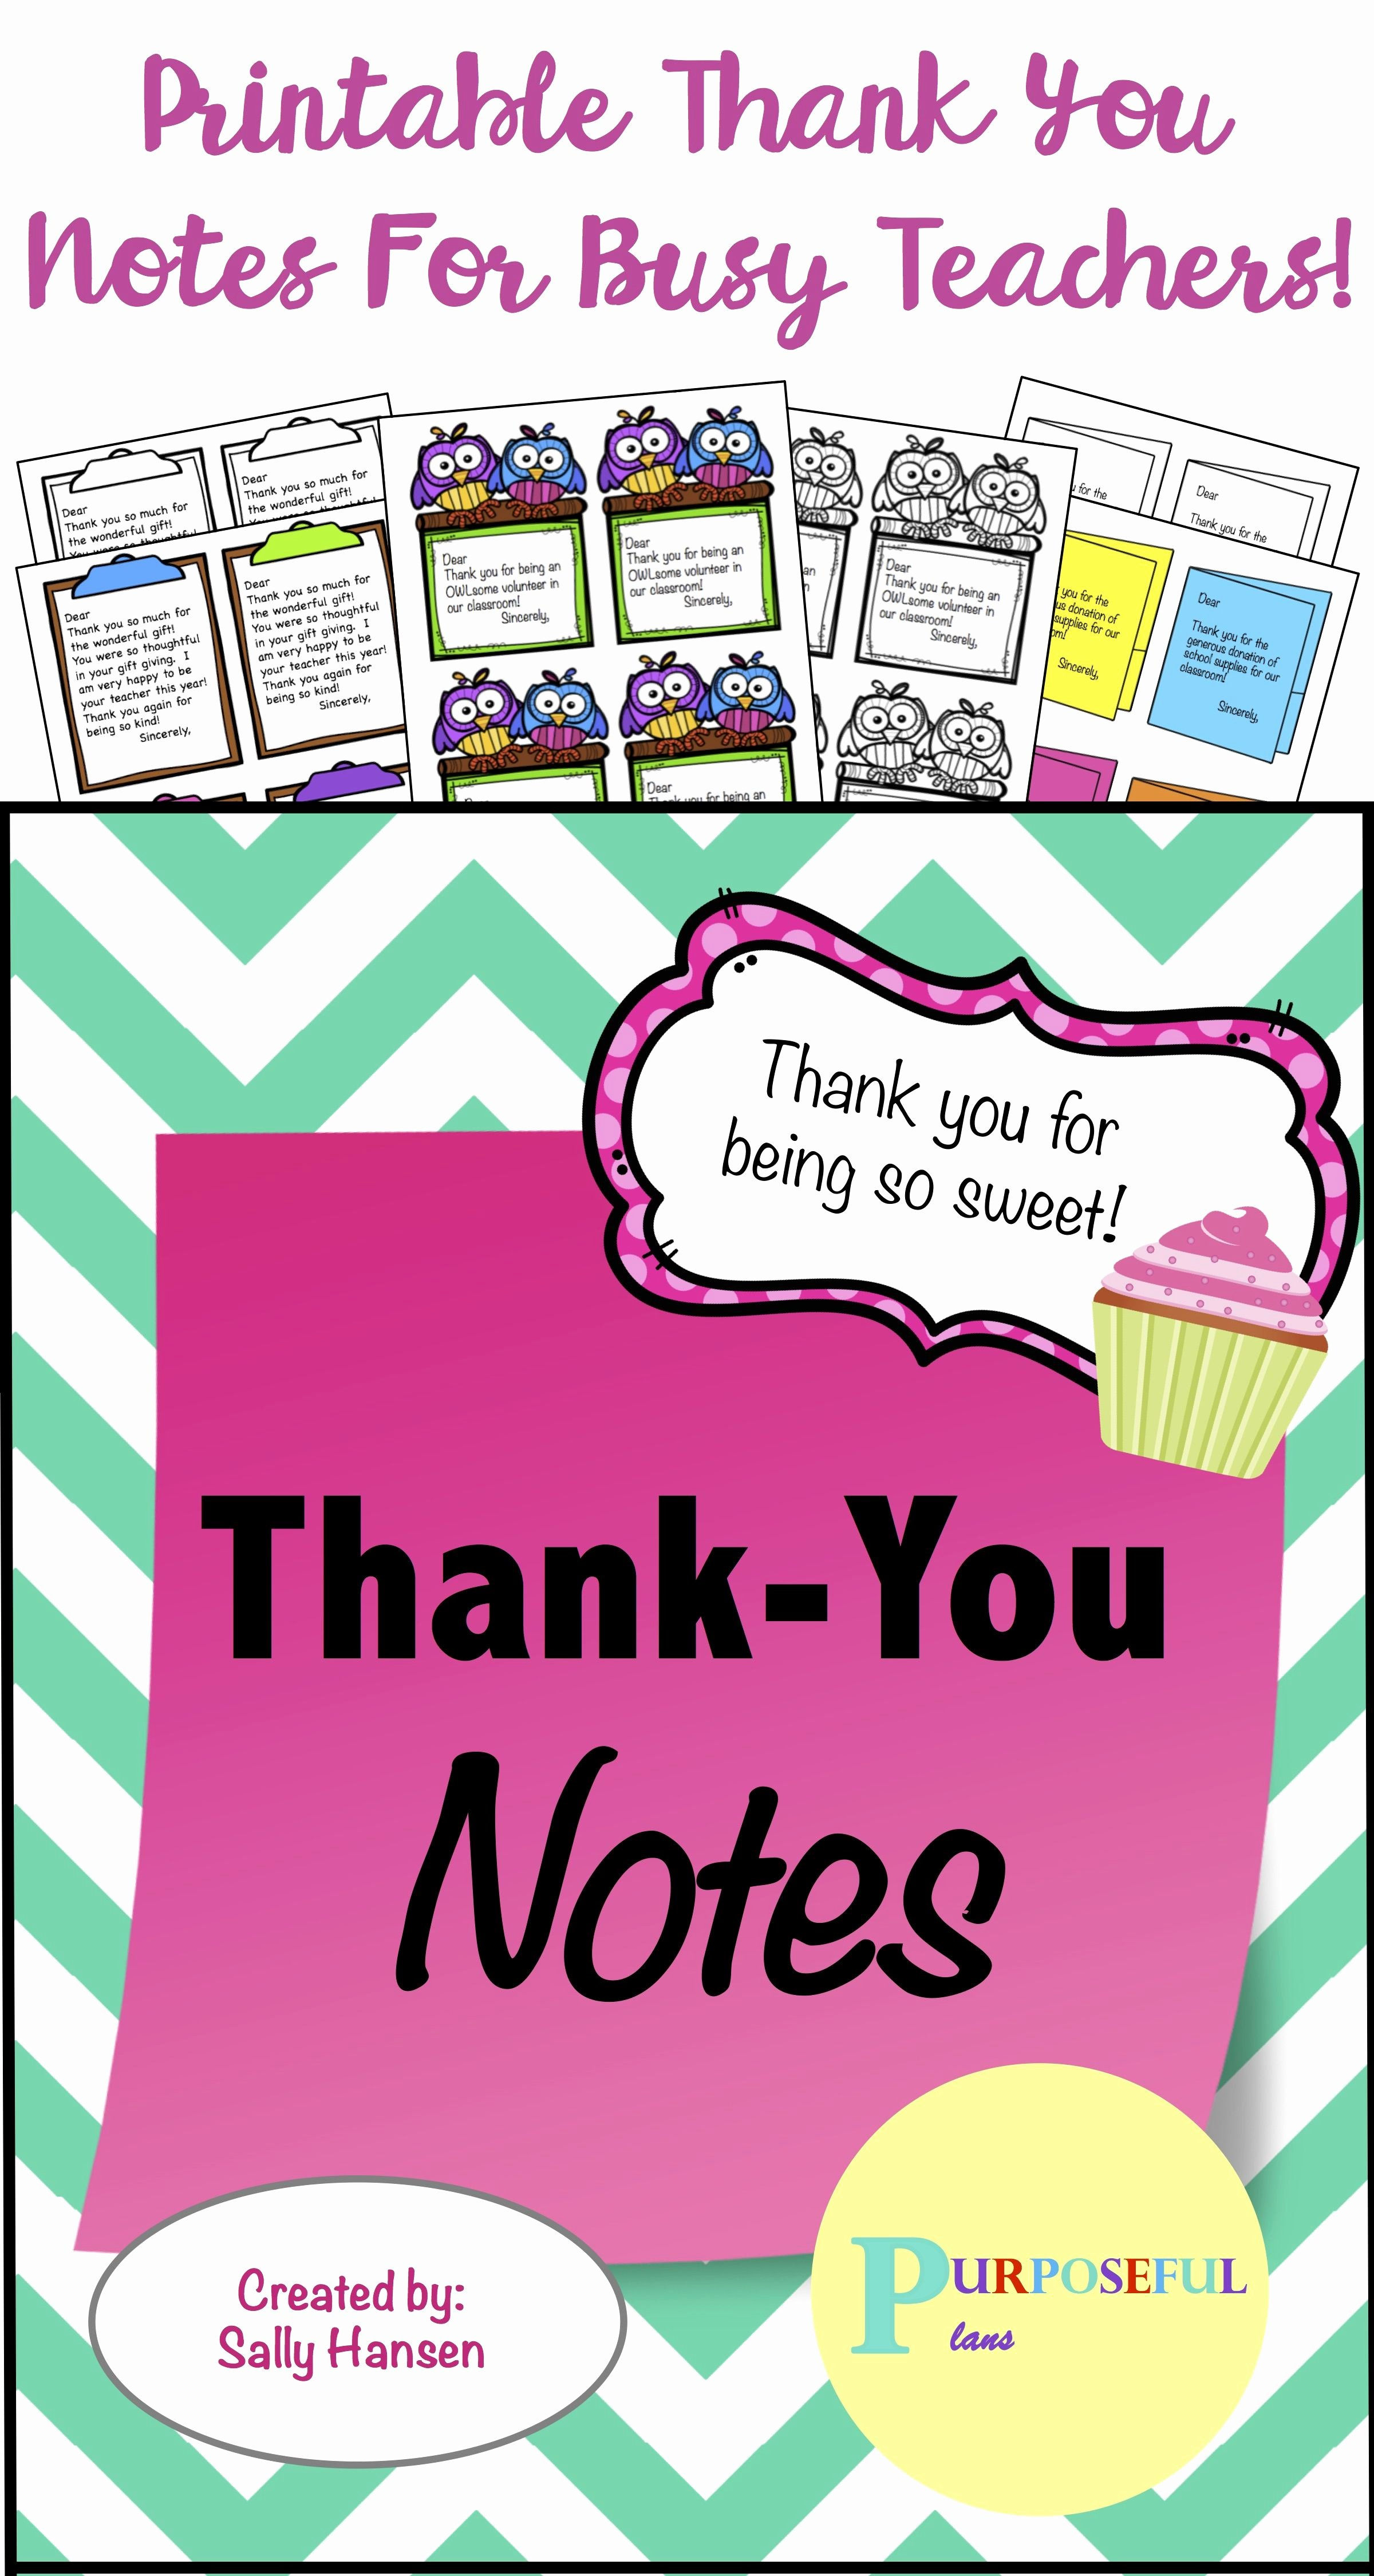 Thank You Notes for Parents Inspirational Thank You Note Super Pack From Teachers for Students